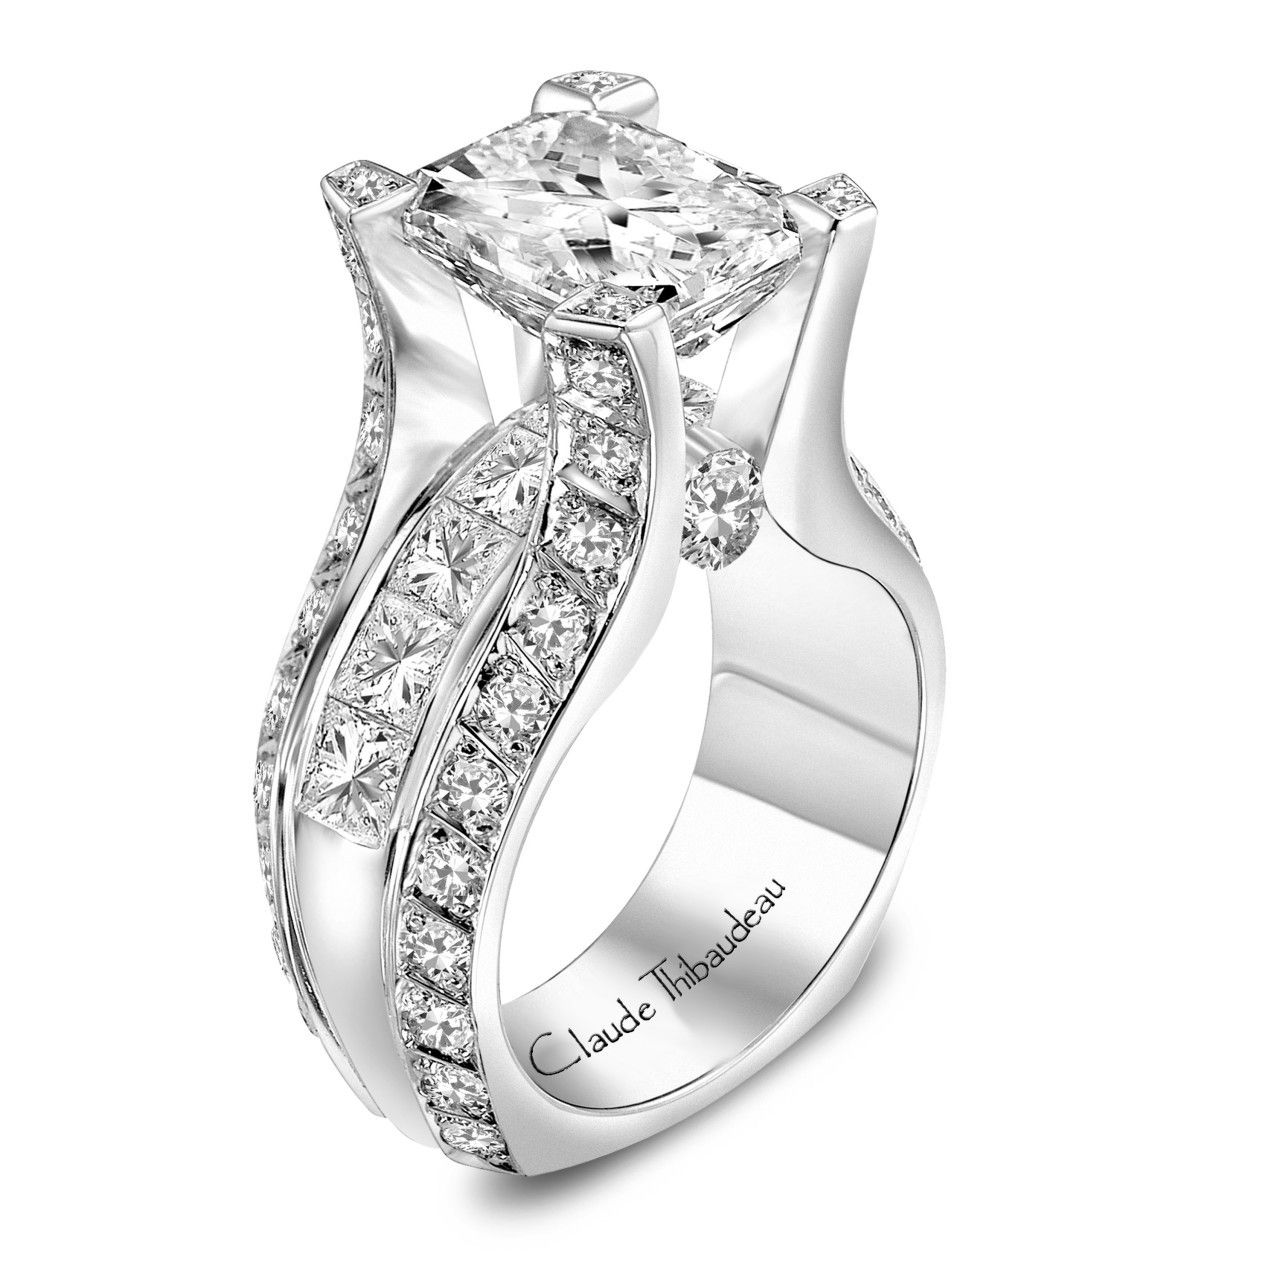 ring two mod knot diamond engagementdetails cfm accents engagement celtic with rings tone